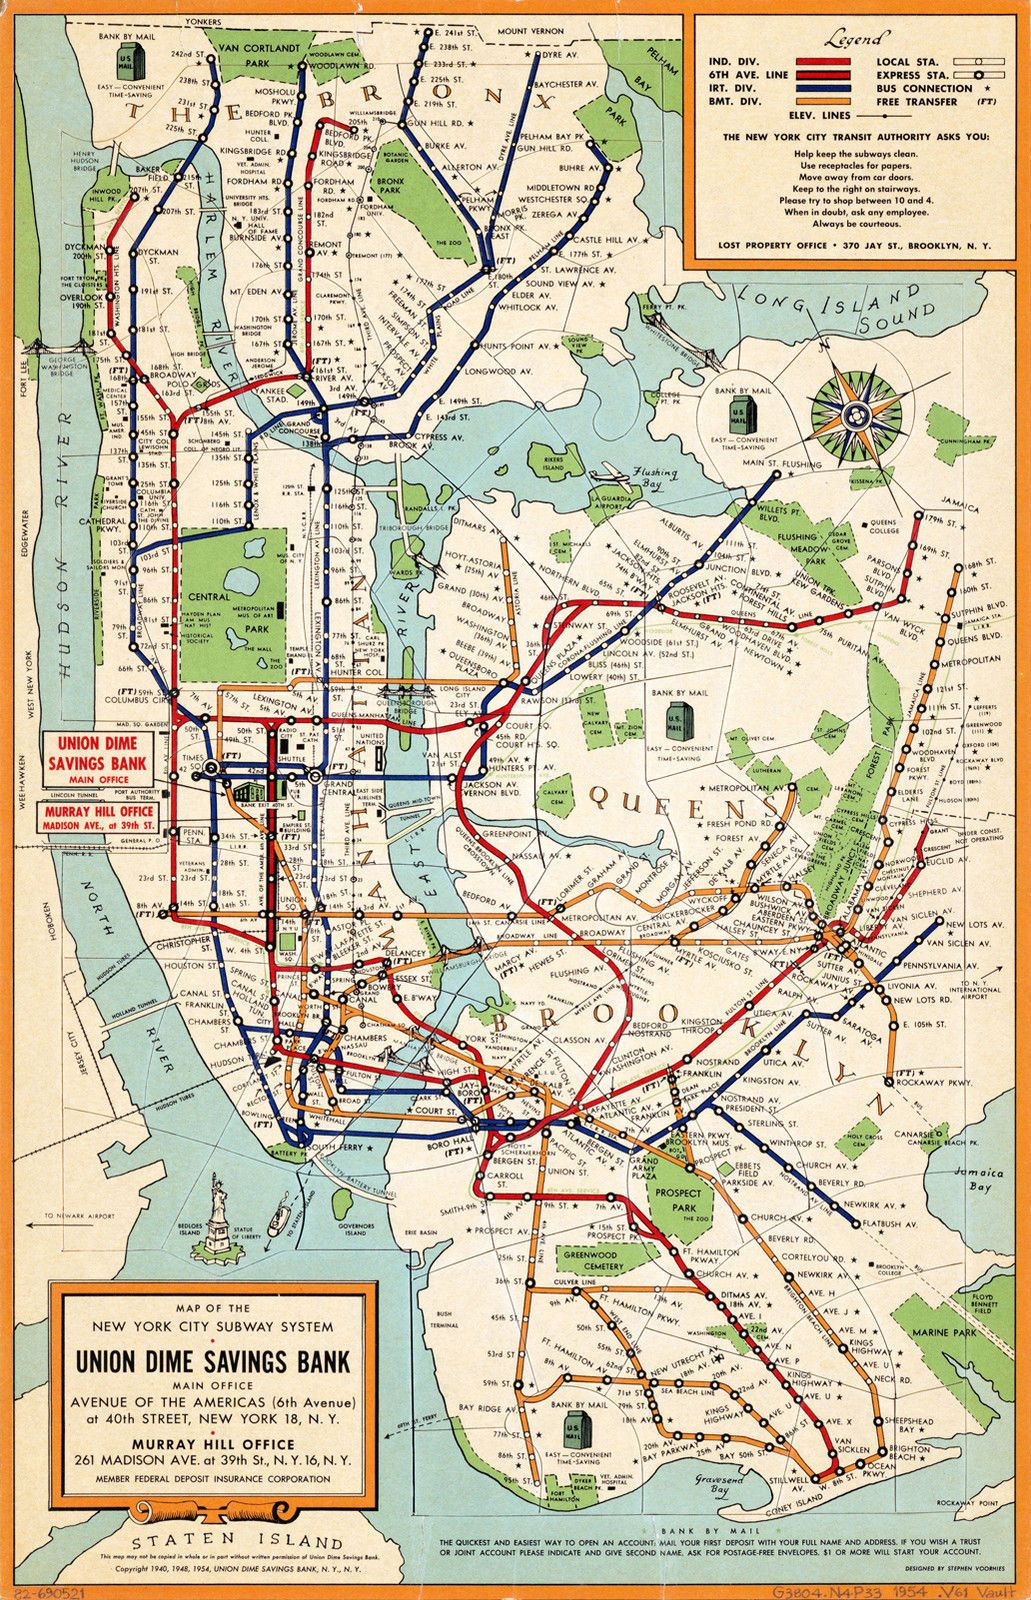 New York Subway Map To Print.Early York City Subway System Map Wall Poster Print Decor Vintage